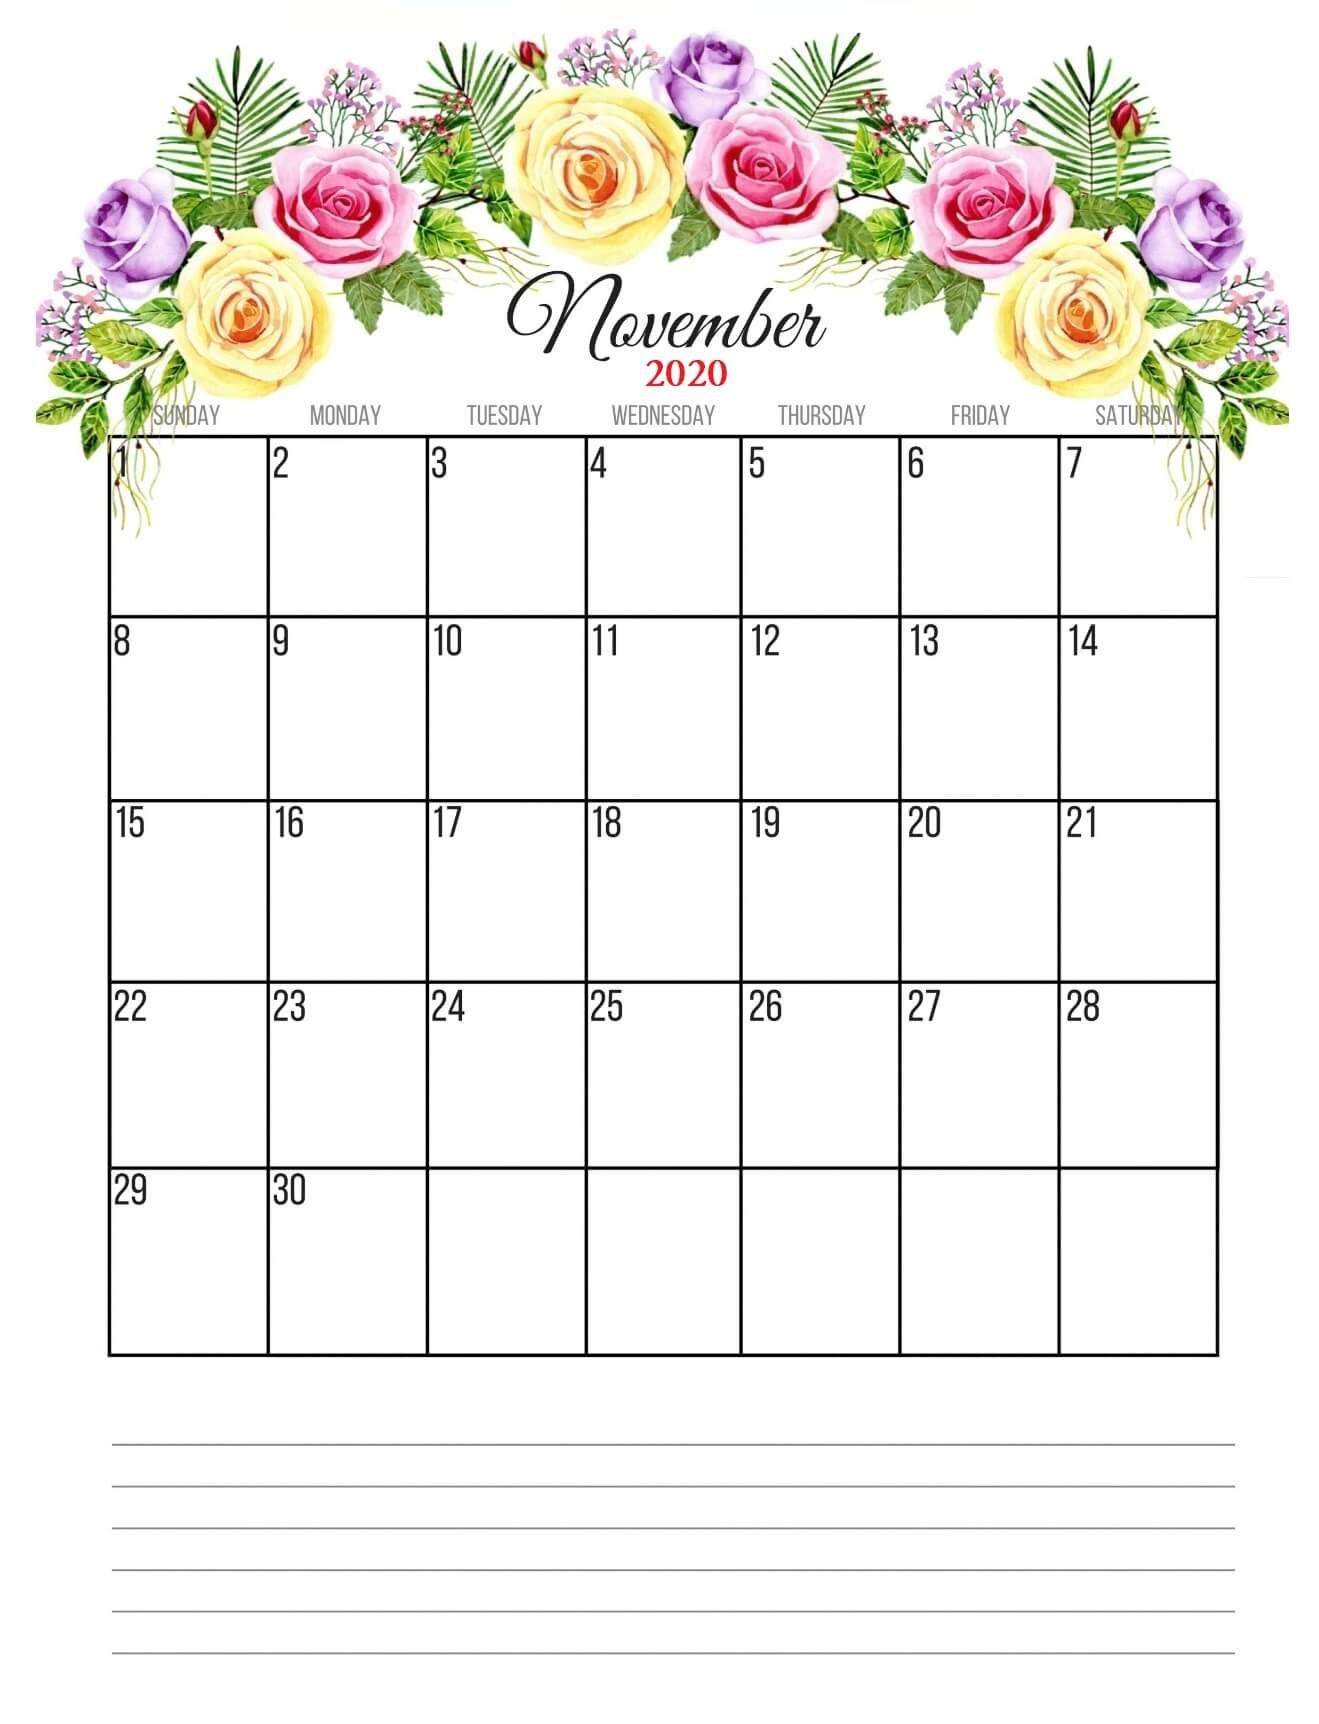 Monthly November 2020 Floral Calendar with Notes